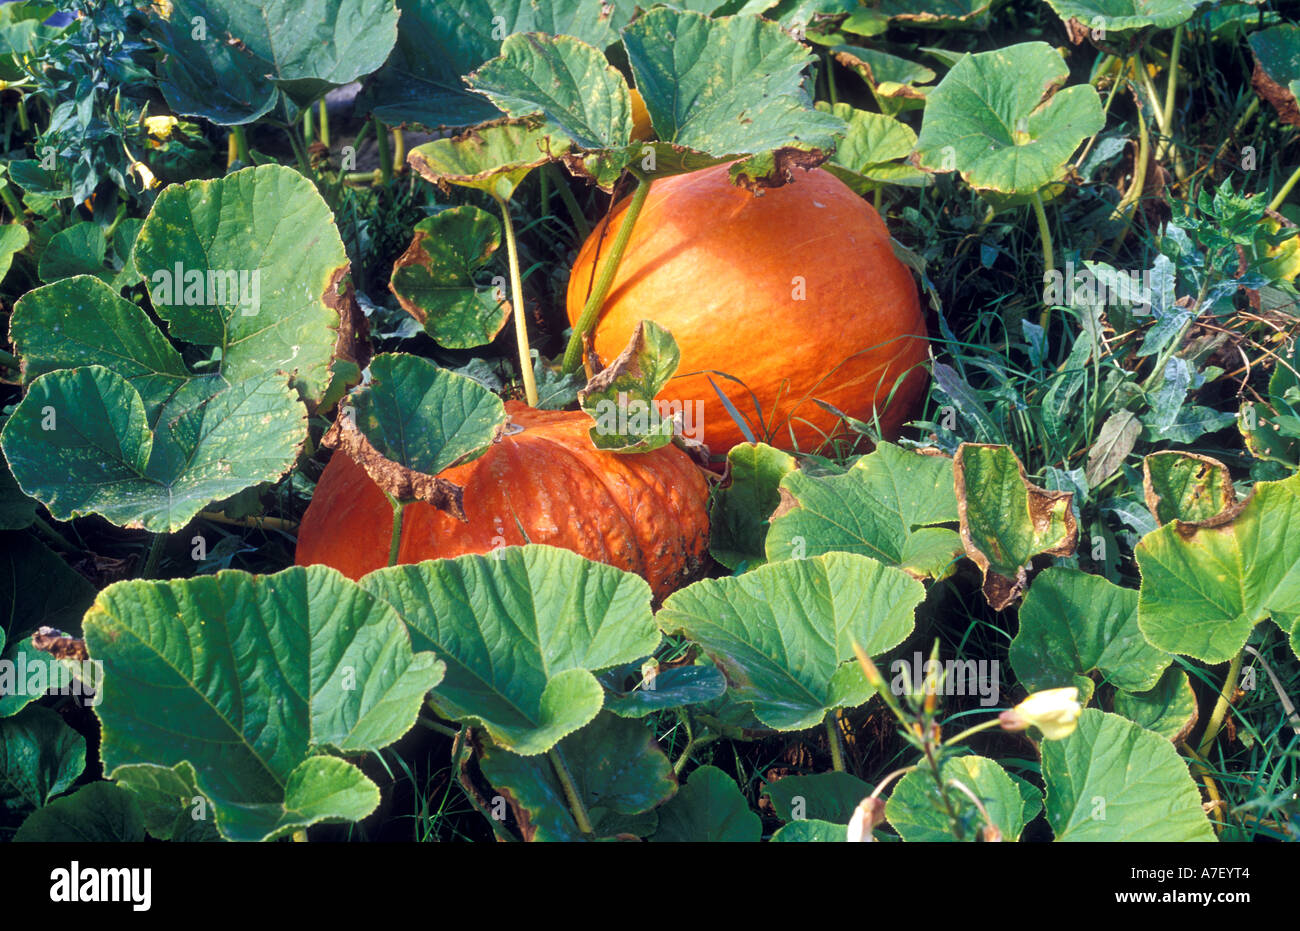 Fully grown giant pumpkins growing on the ground - Stock Image